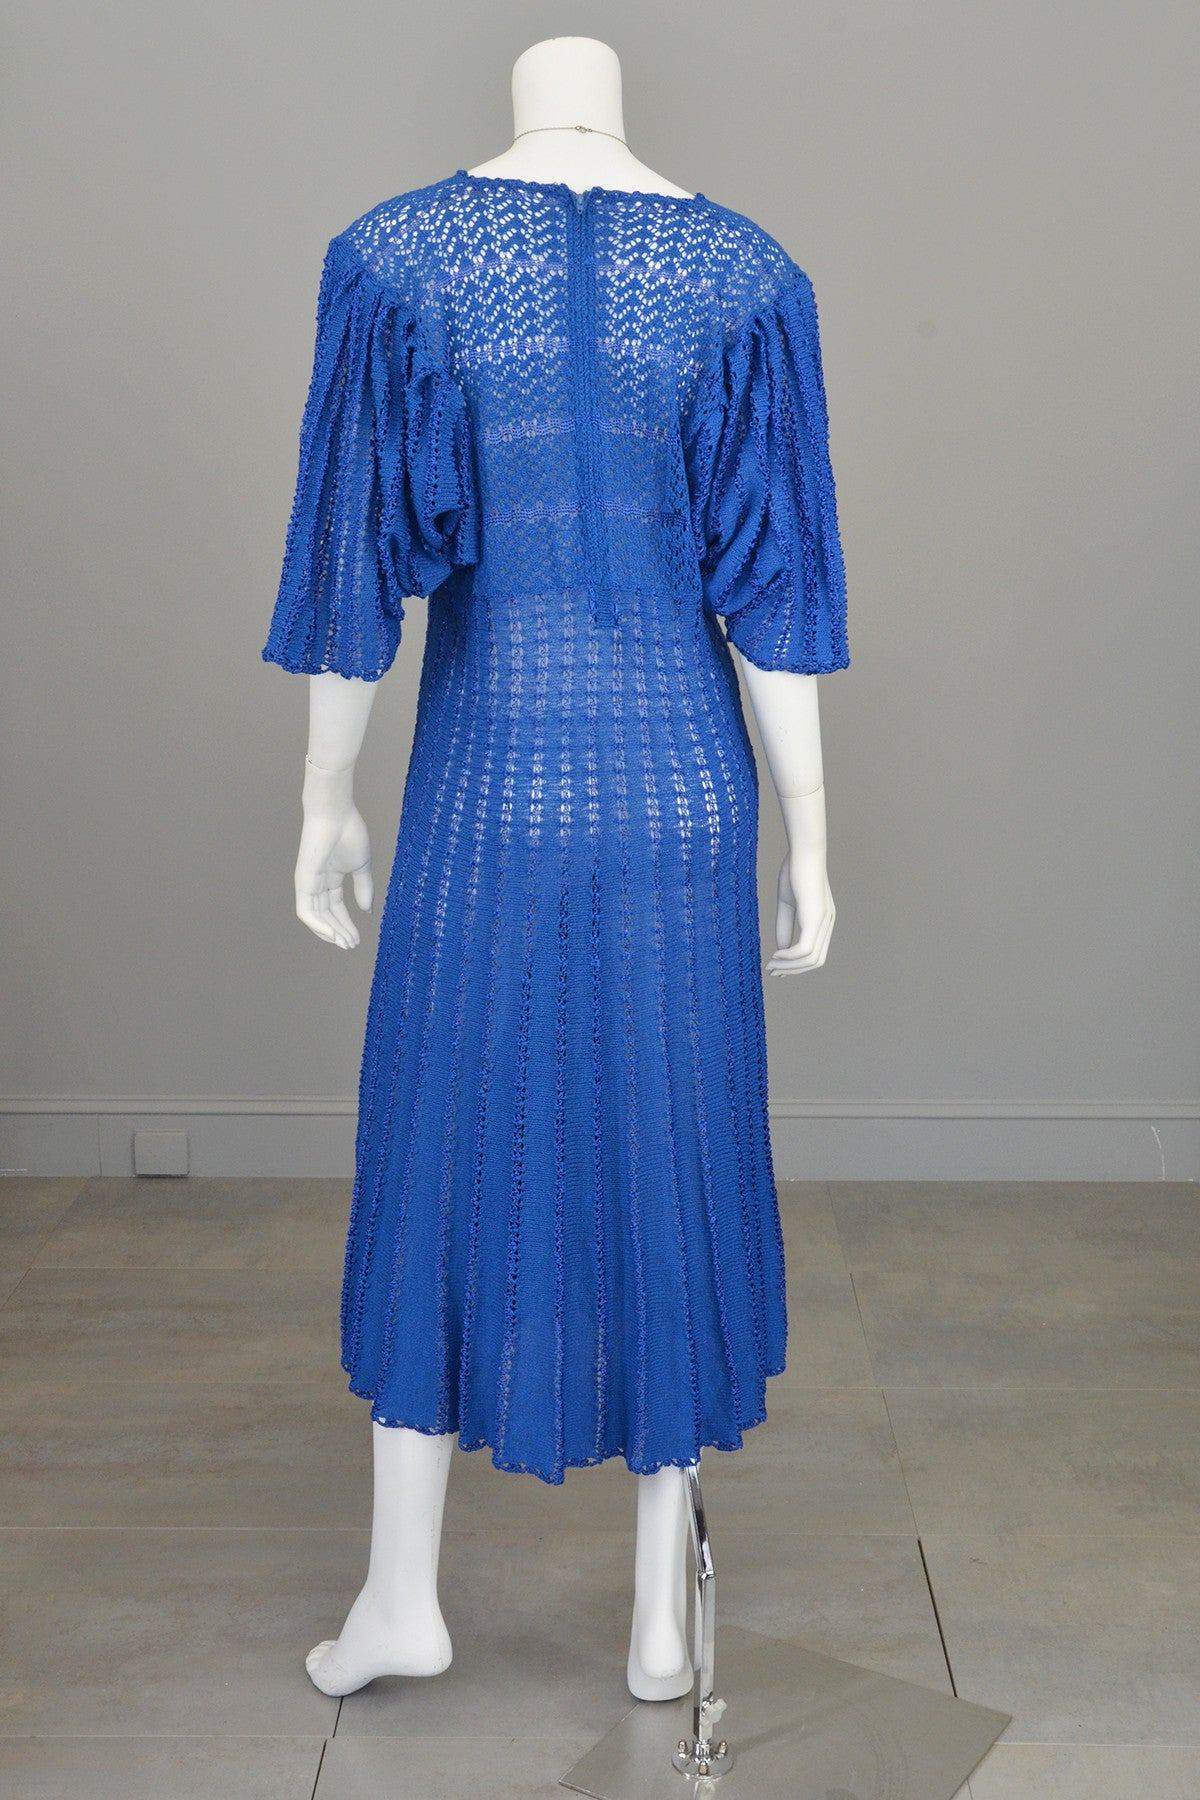 1970s Vibrant Blue Knit Crochet Dress Draping Angel Sleeves